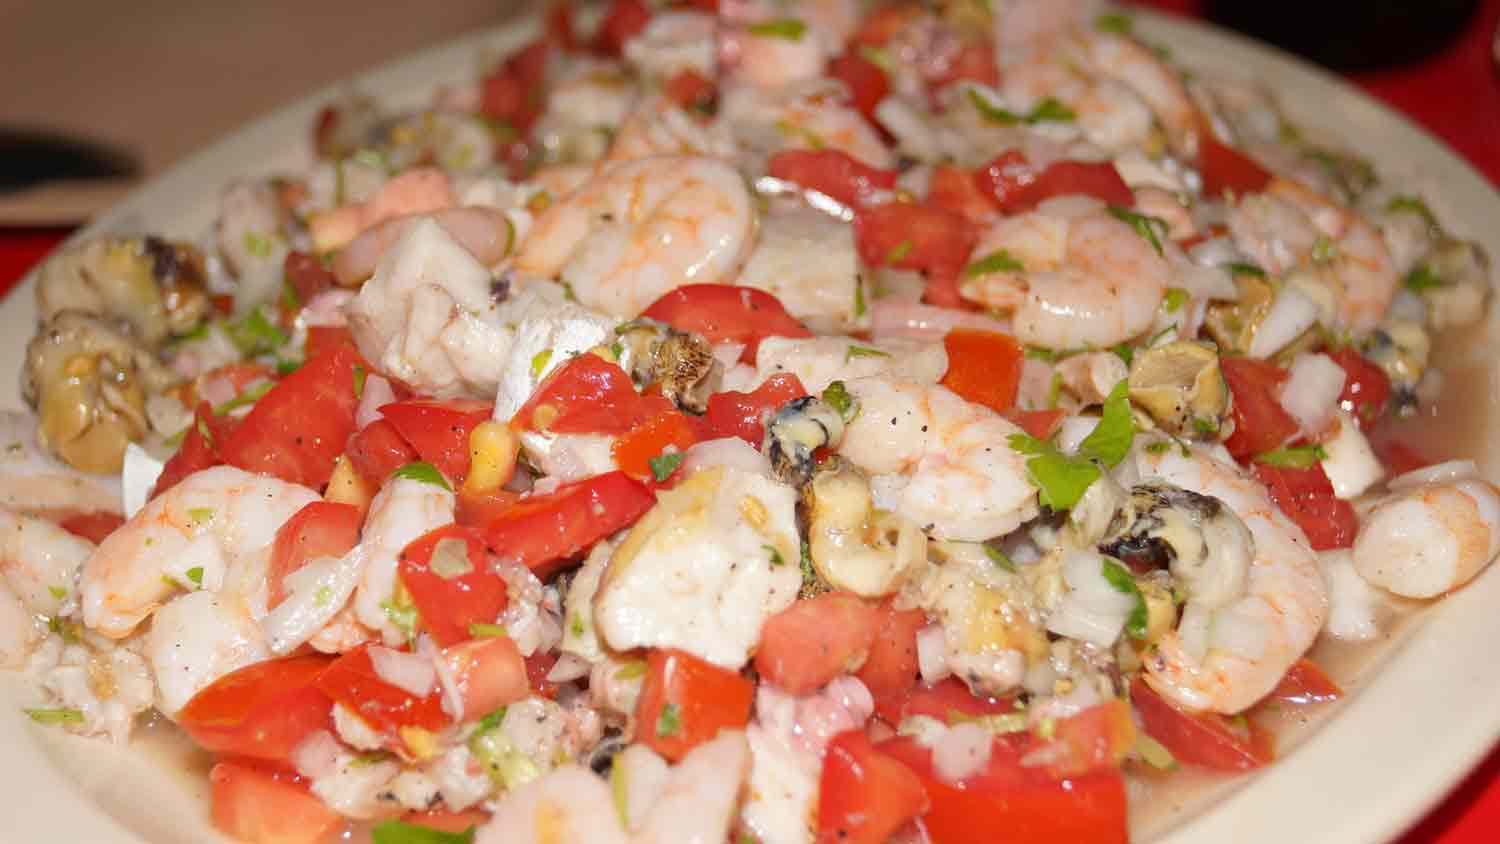 A delicious looking plate of shrimp ceviche.